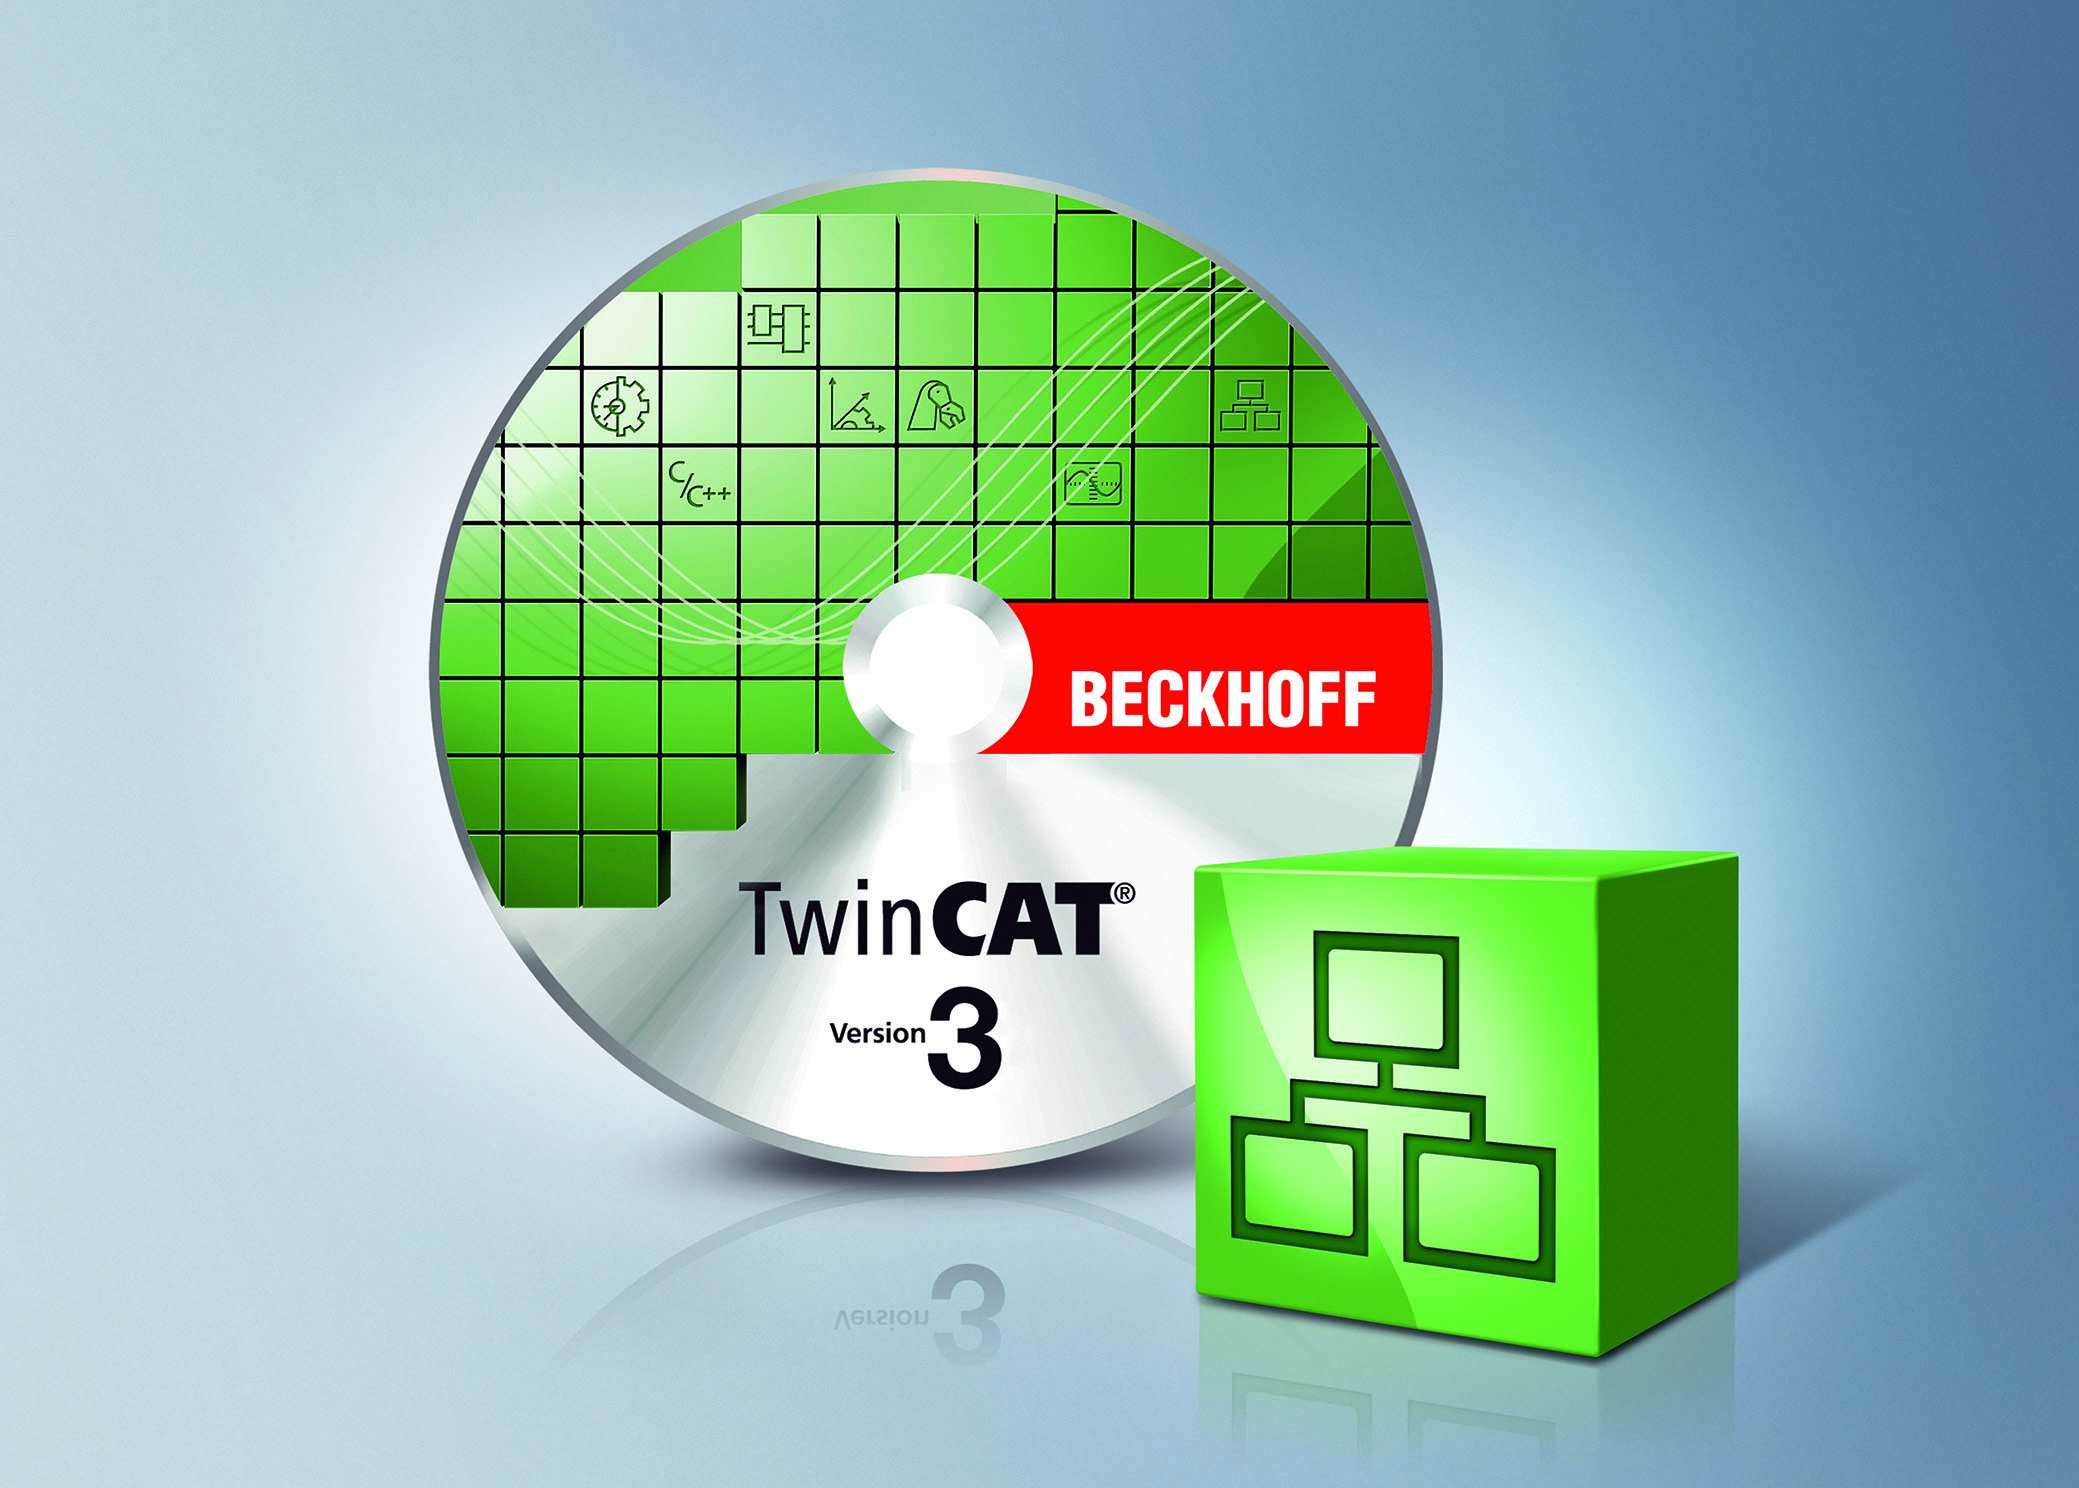 TwinCat supporte le protocole de communication S7